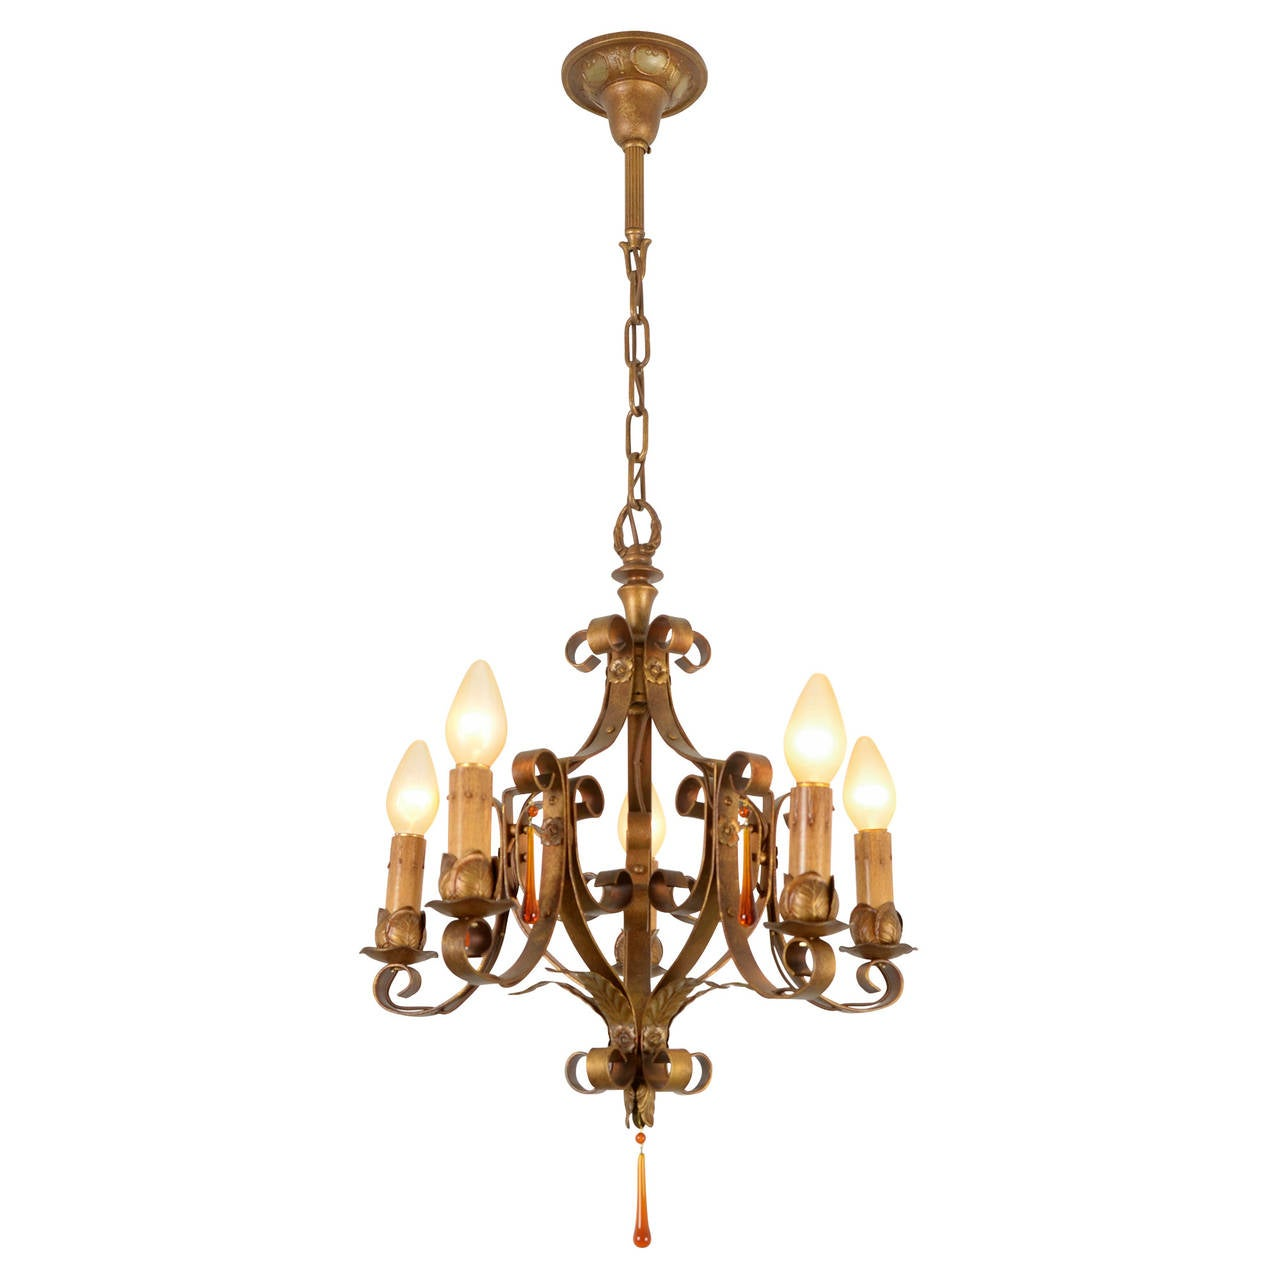 Revival style polychrome five light strap chandelier circa 1925 at 1stdibs - Circa lighting chandeliers ...